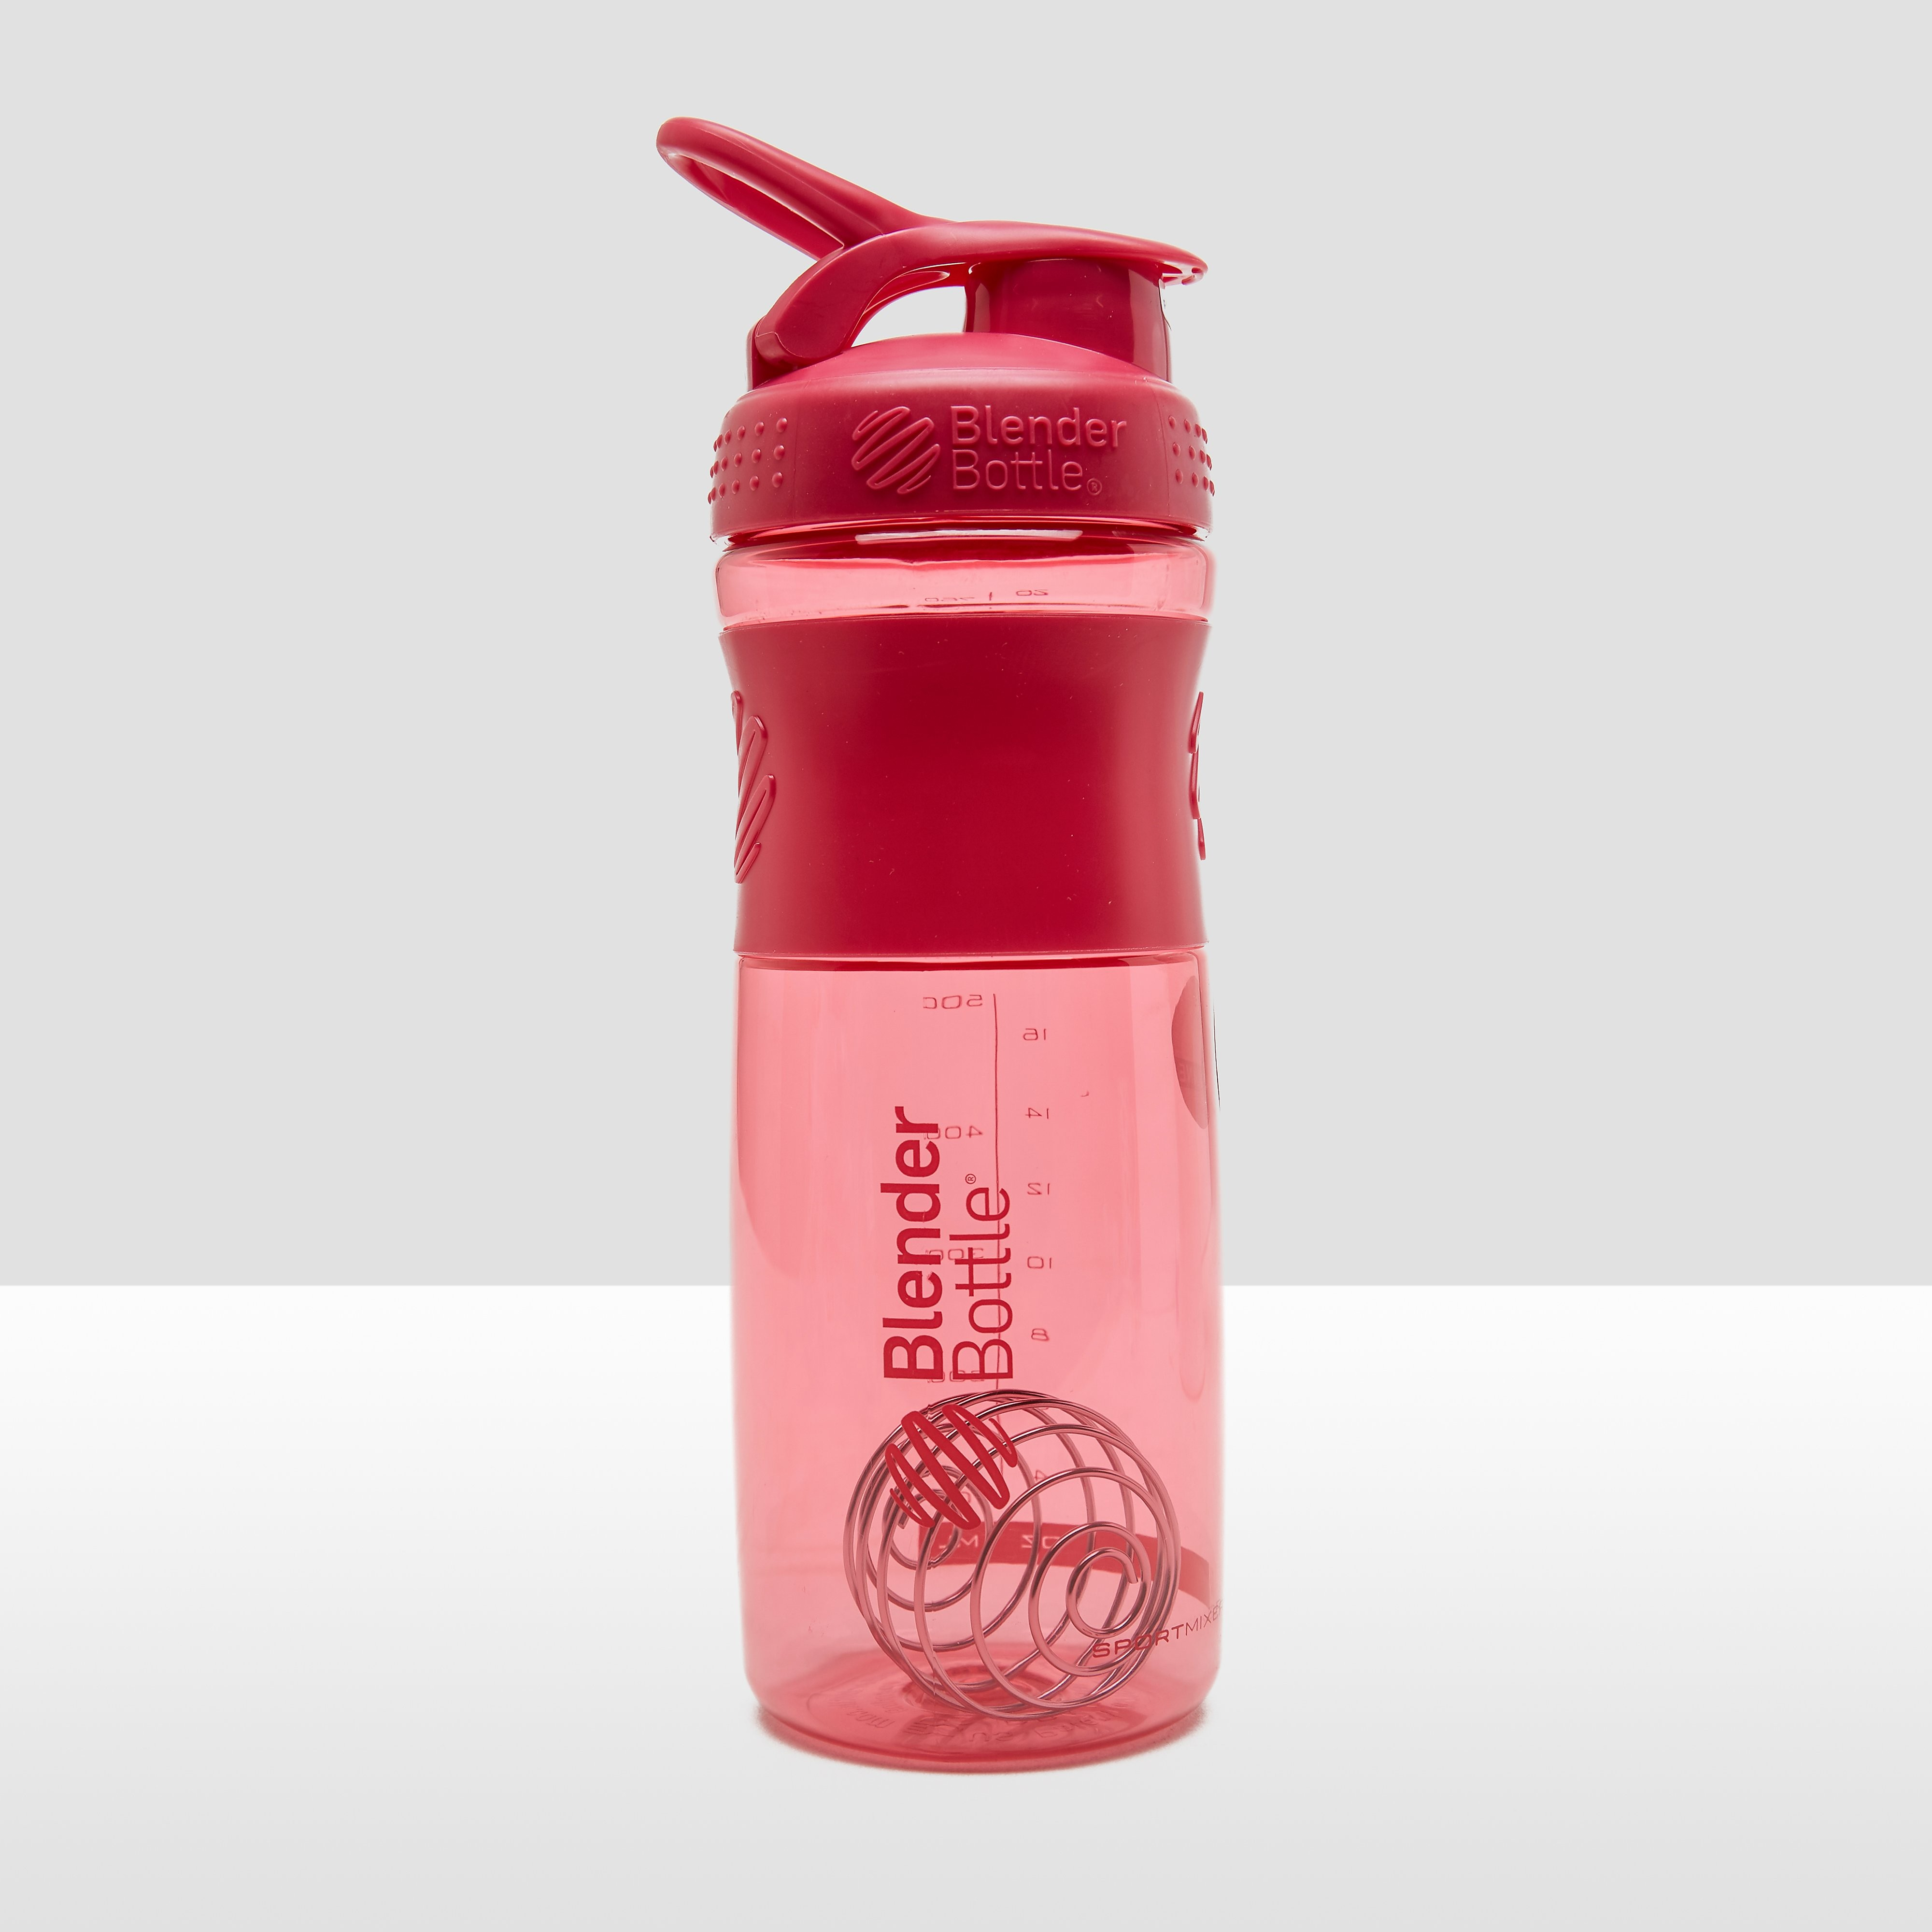 BLENDERBOTTLE BLENDER BOTTLE SPORTMIXER DRINKFLES ROZE